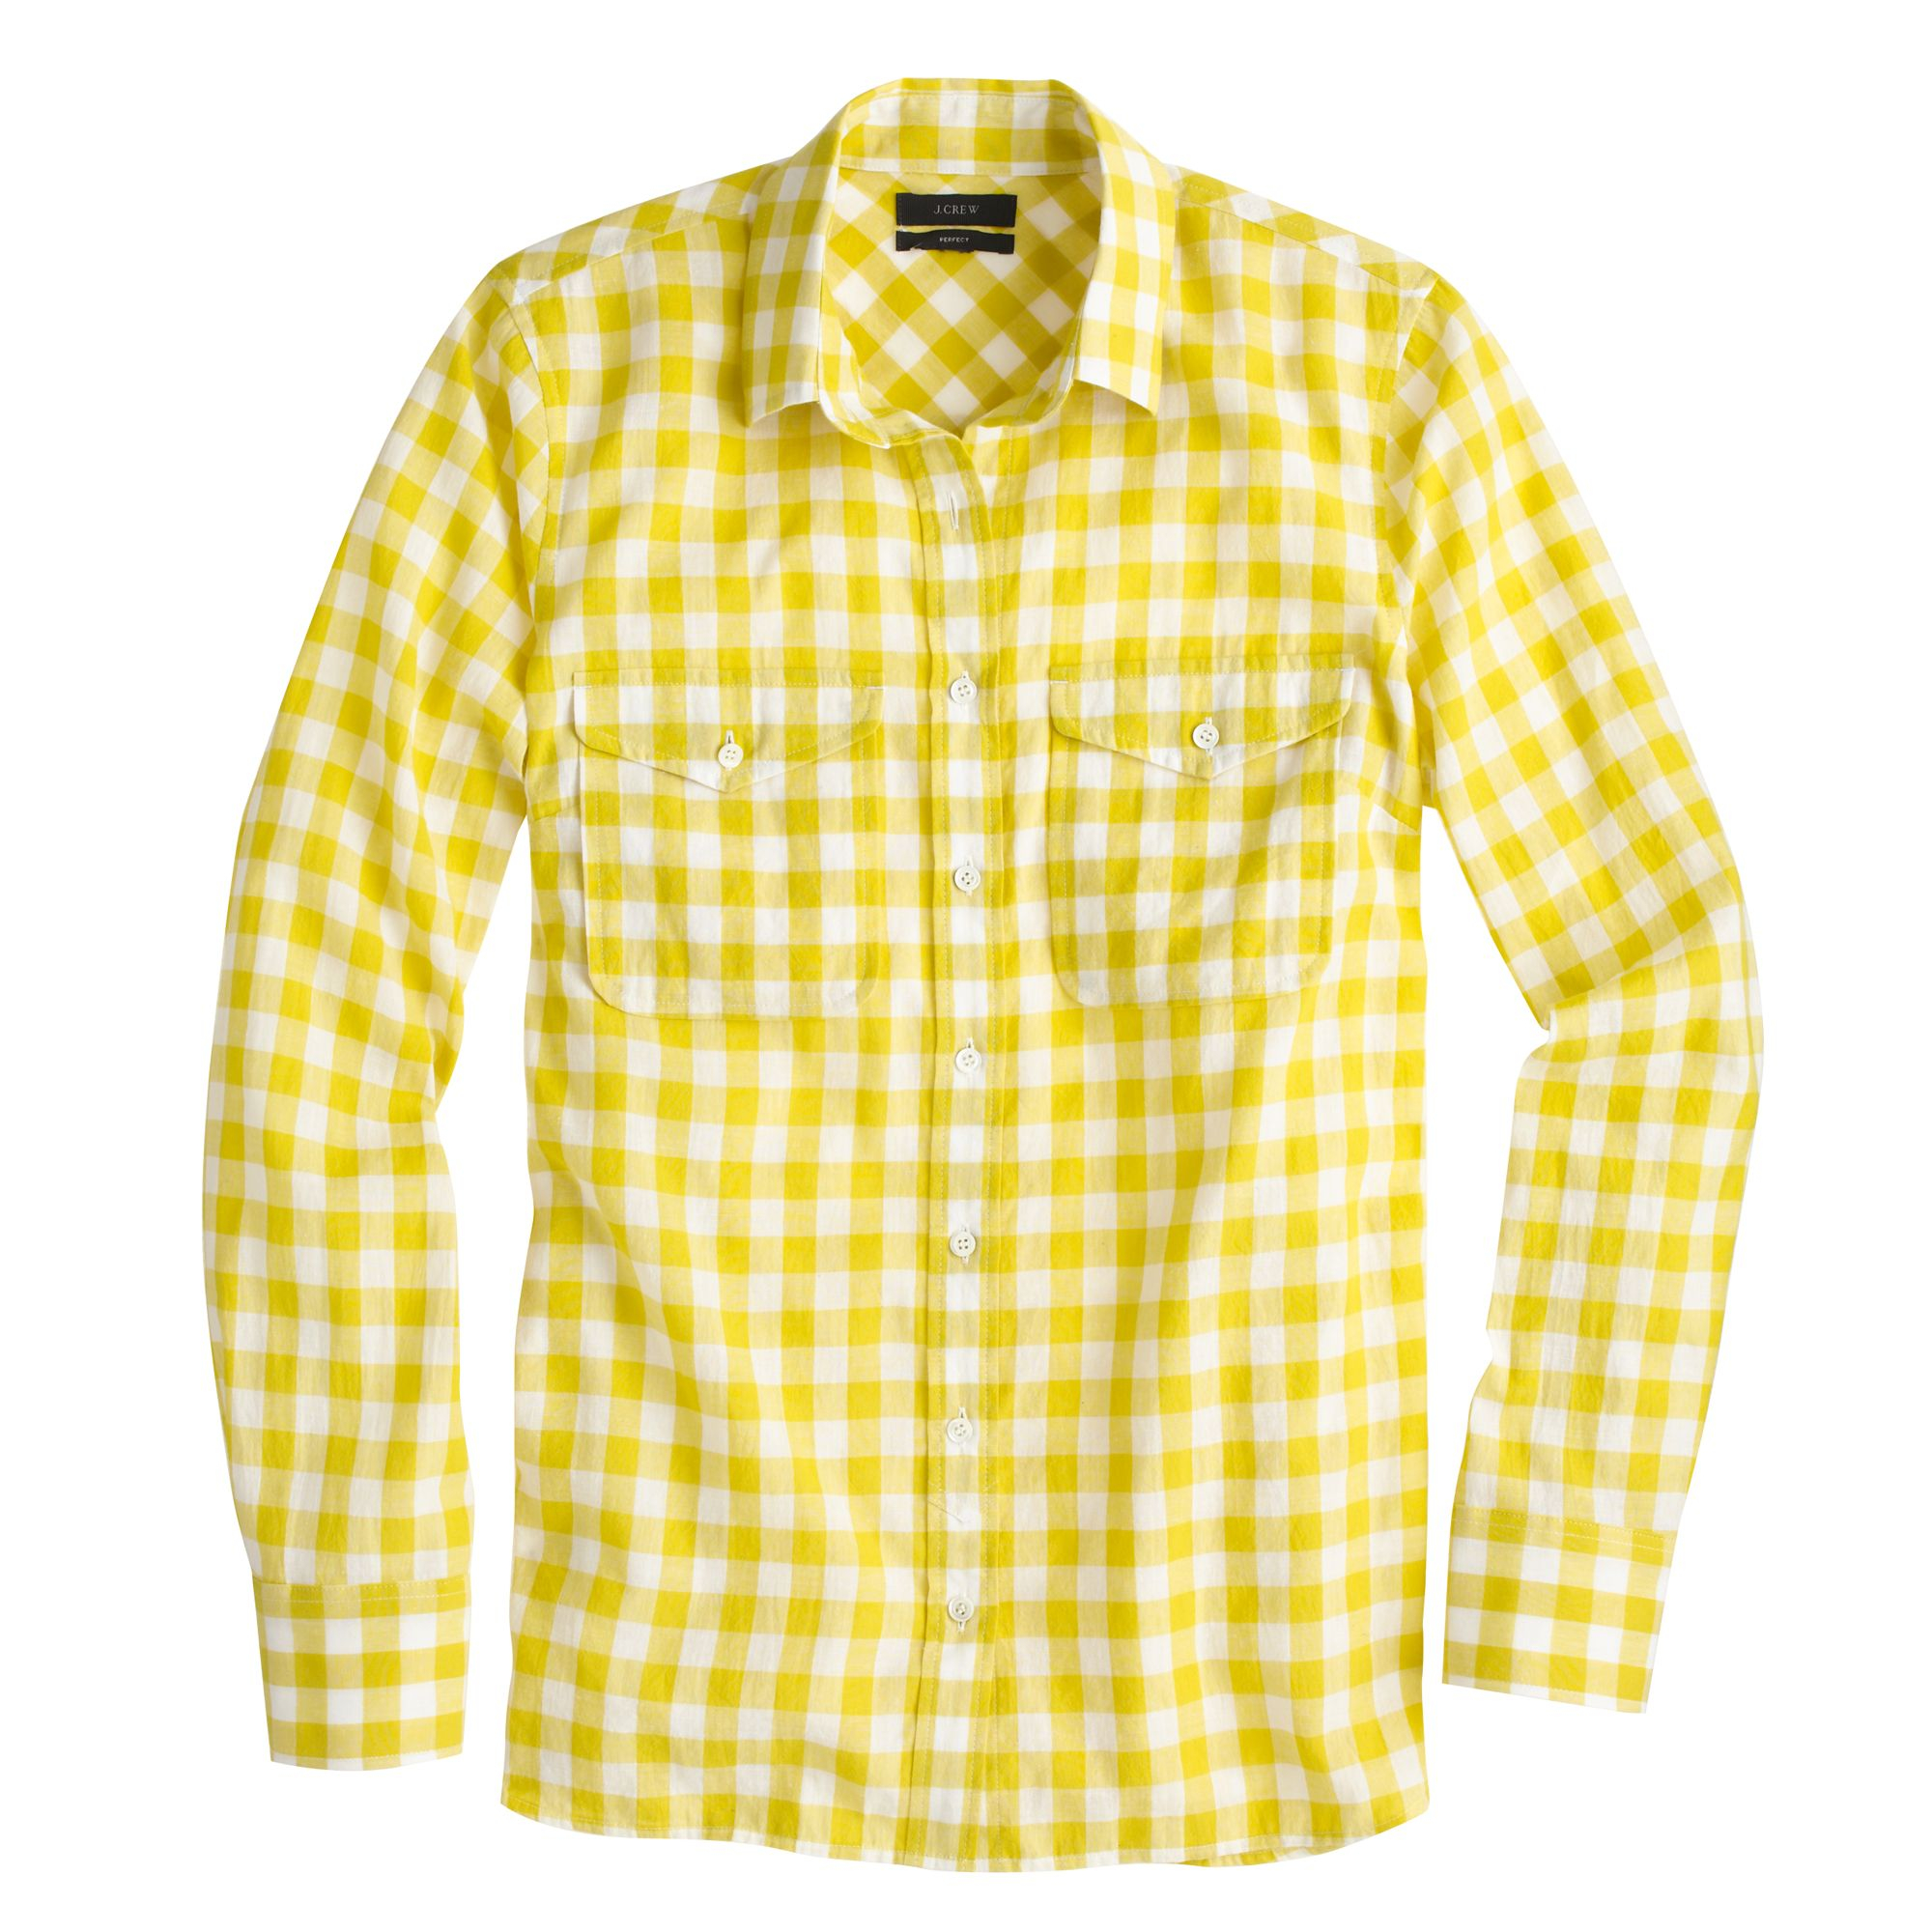 Yellow gingham mens dress shirt dress blog edin for Mens yellow gingham shirt